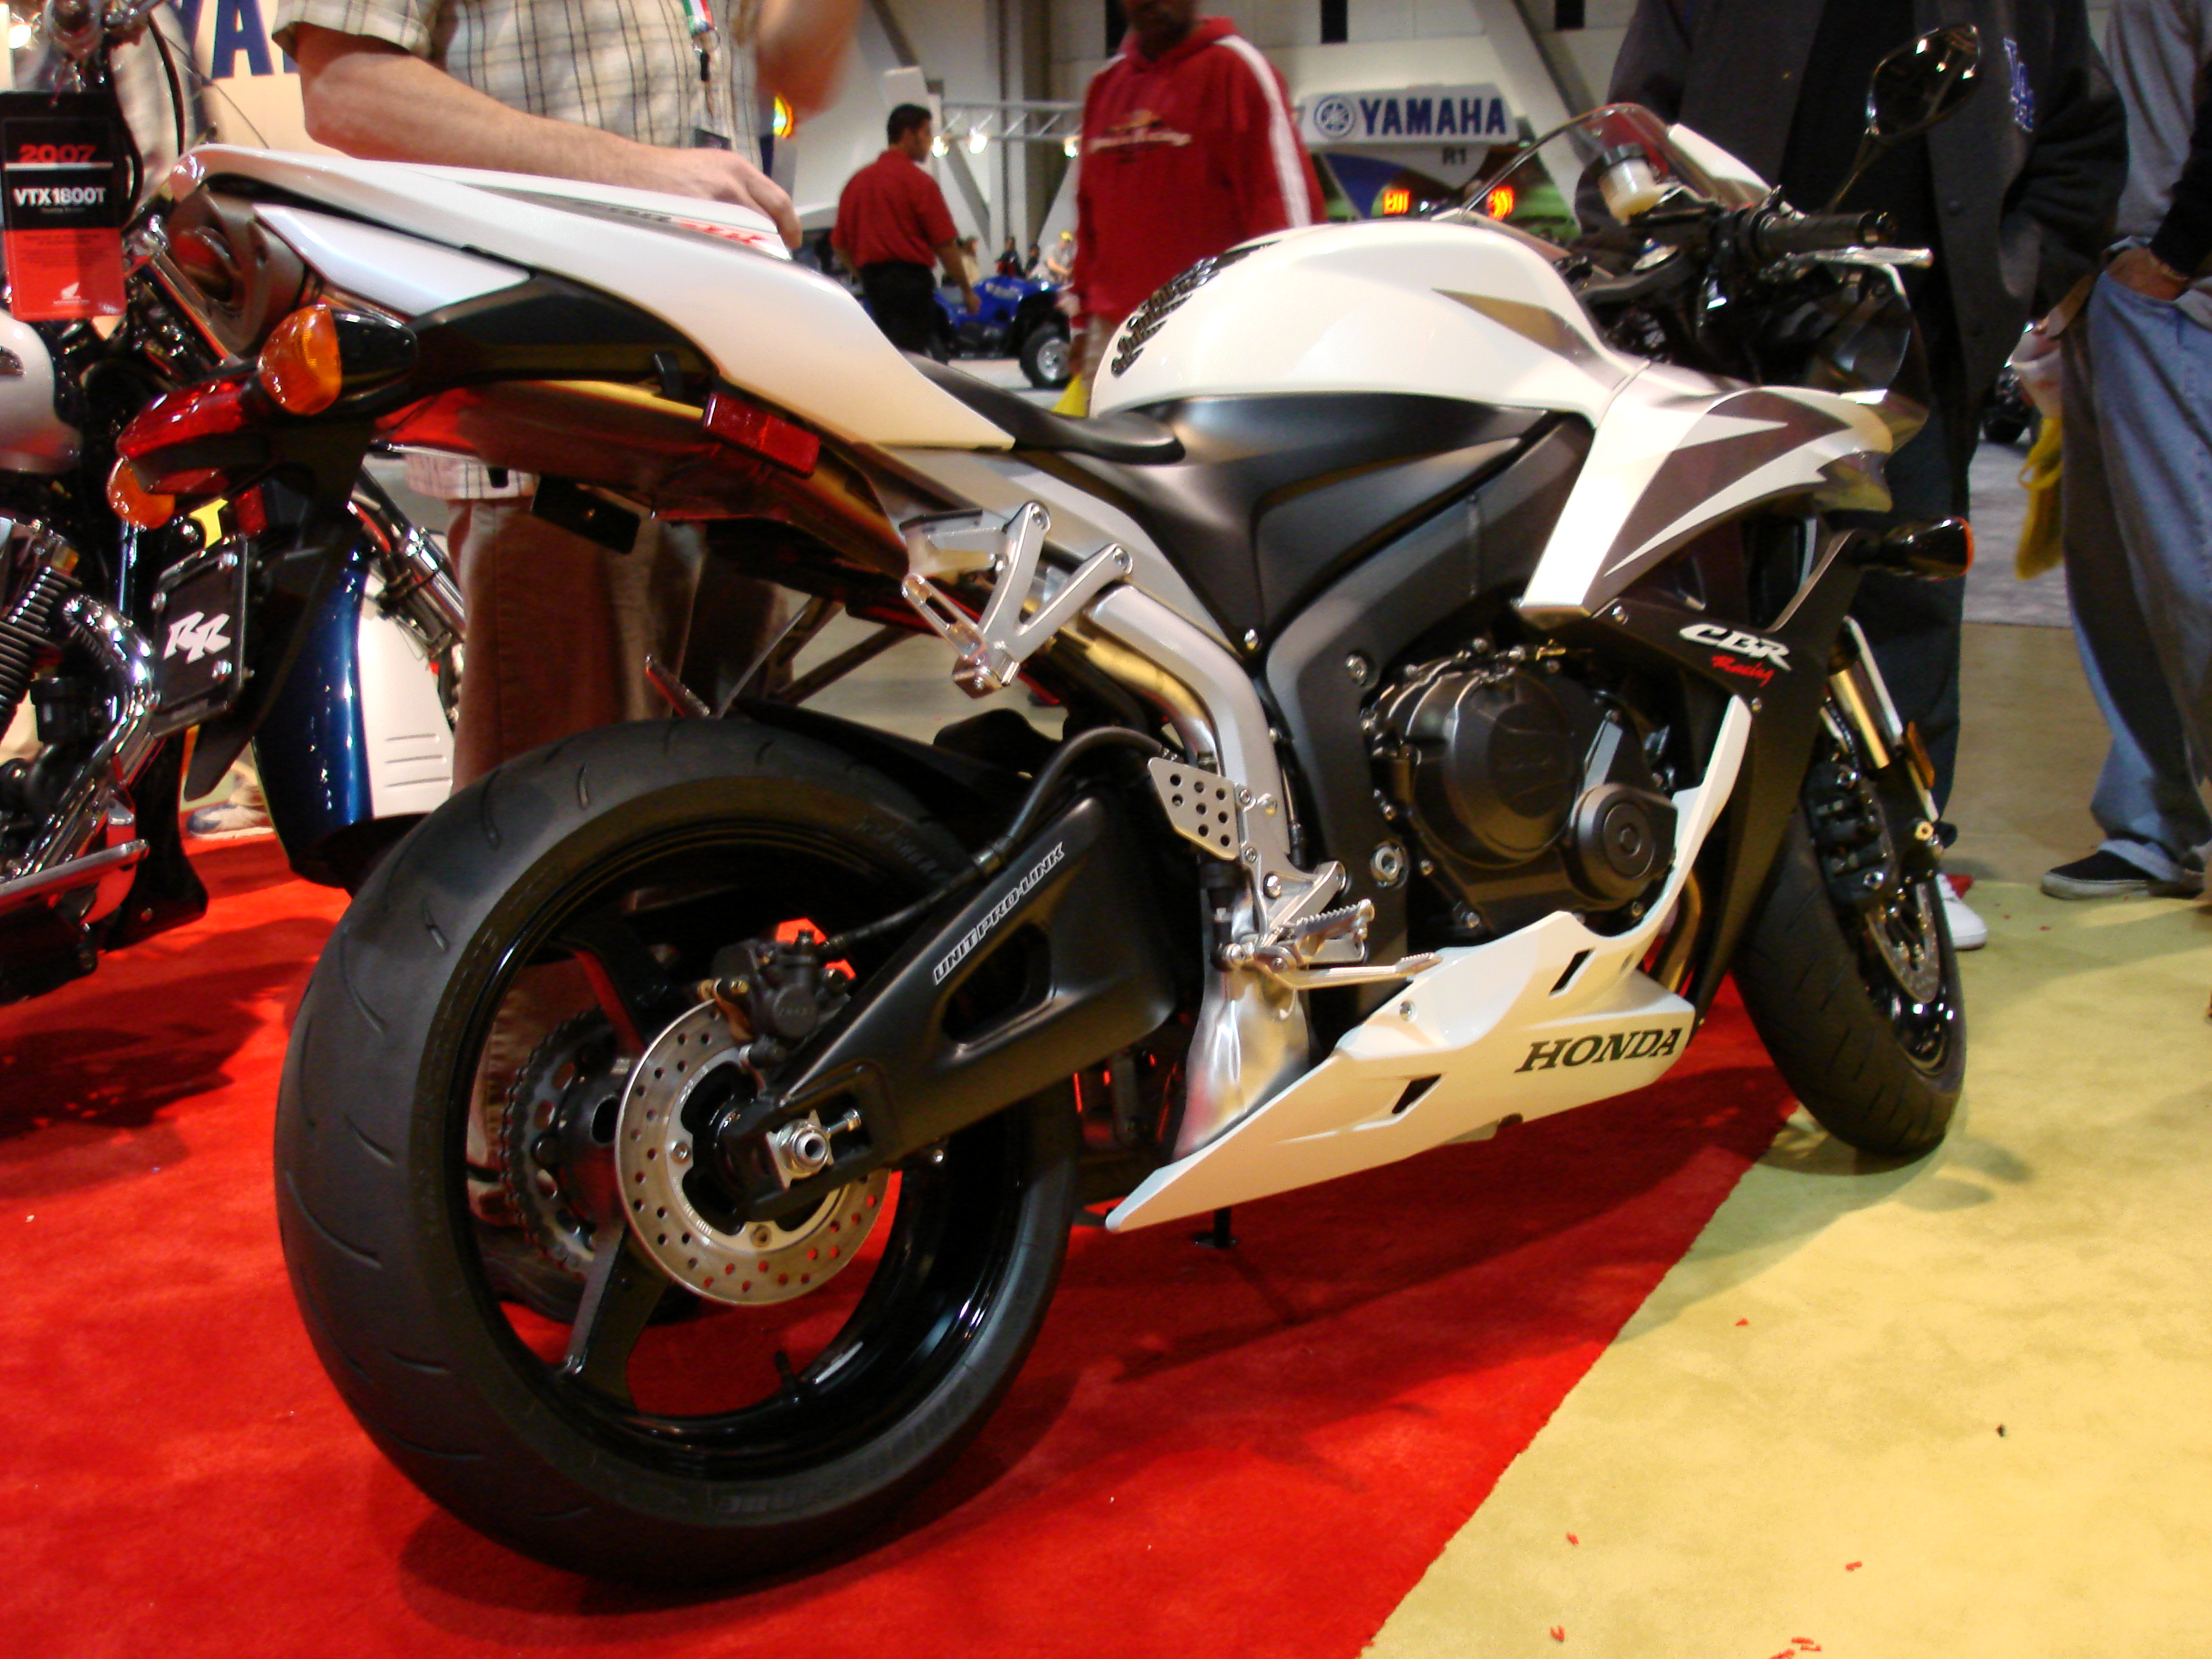 Honda Cbr600rr Prototype Pics Specs And List Of Seriess By Year Motorcycles Prototypes 24714